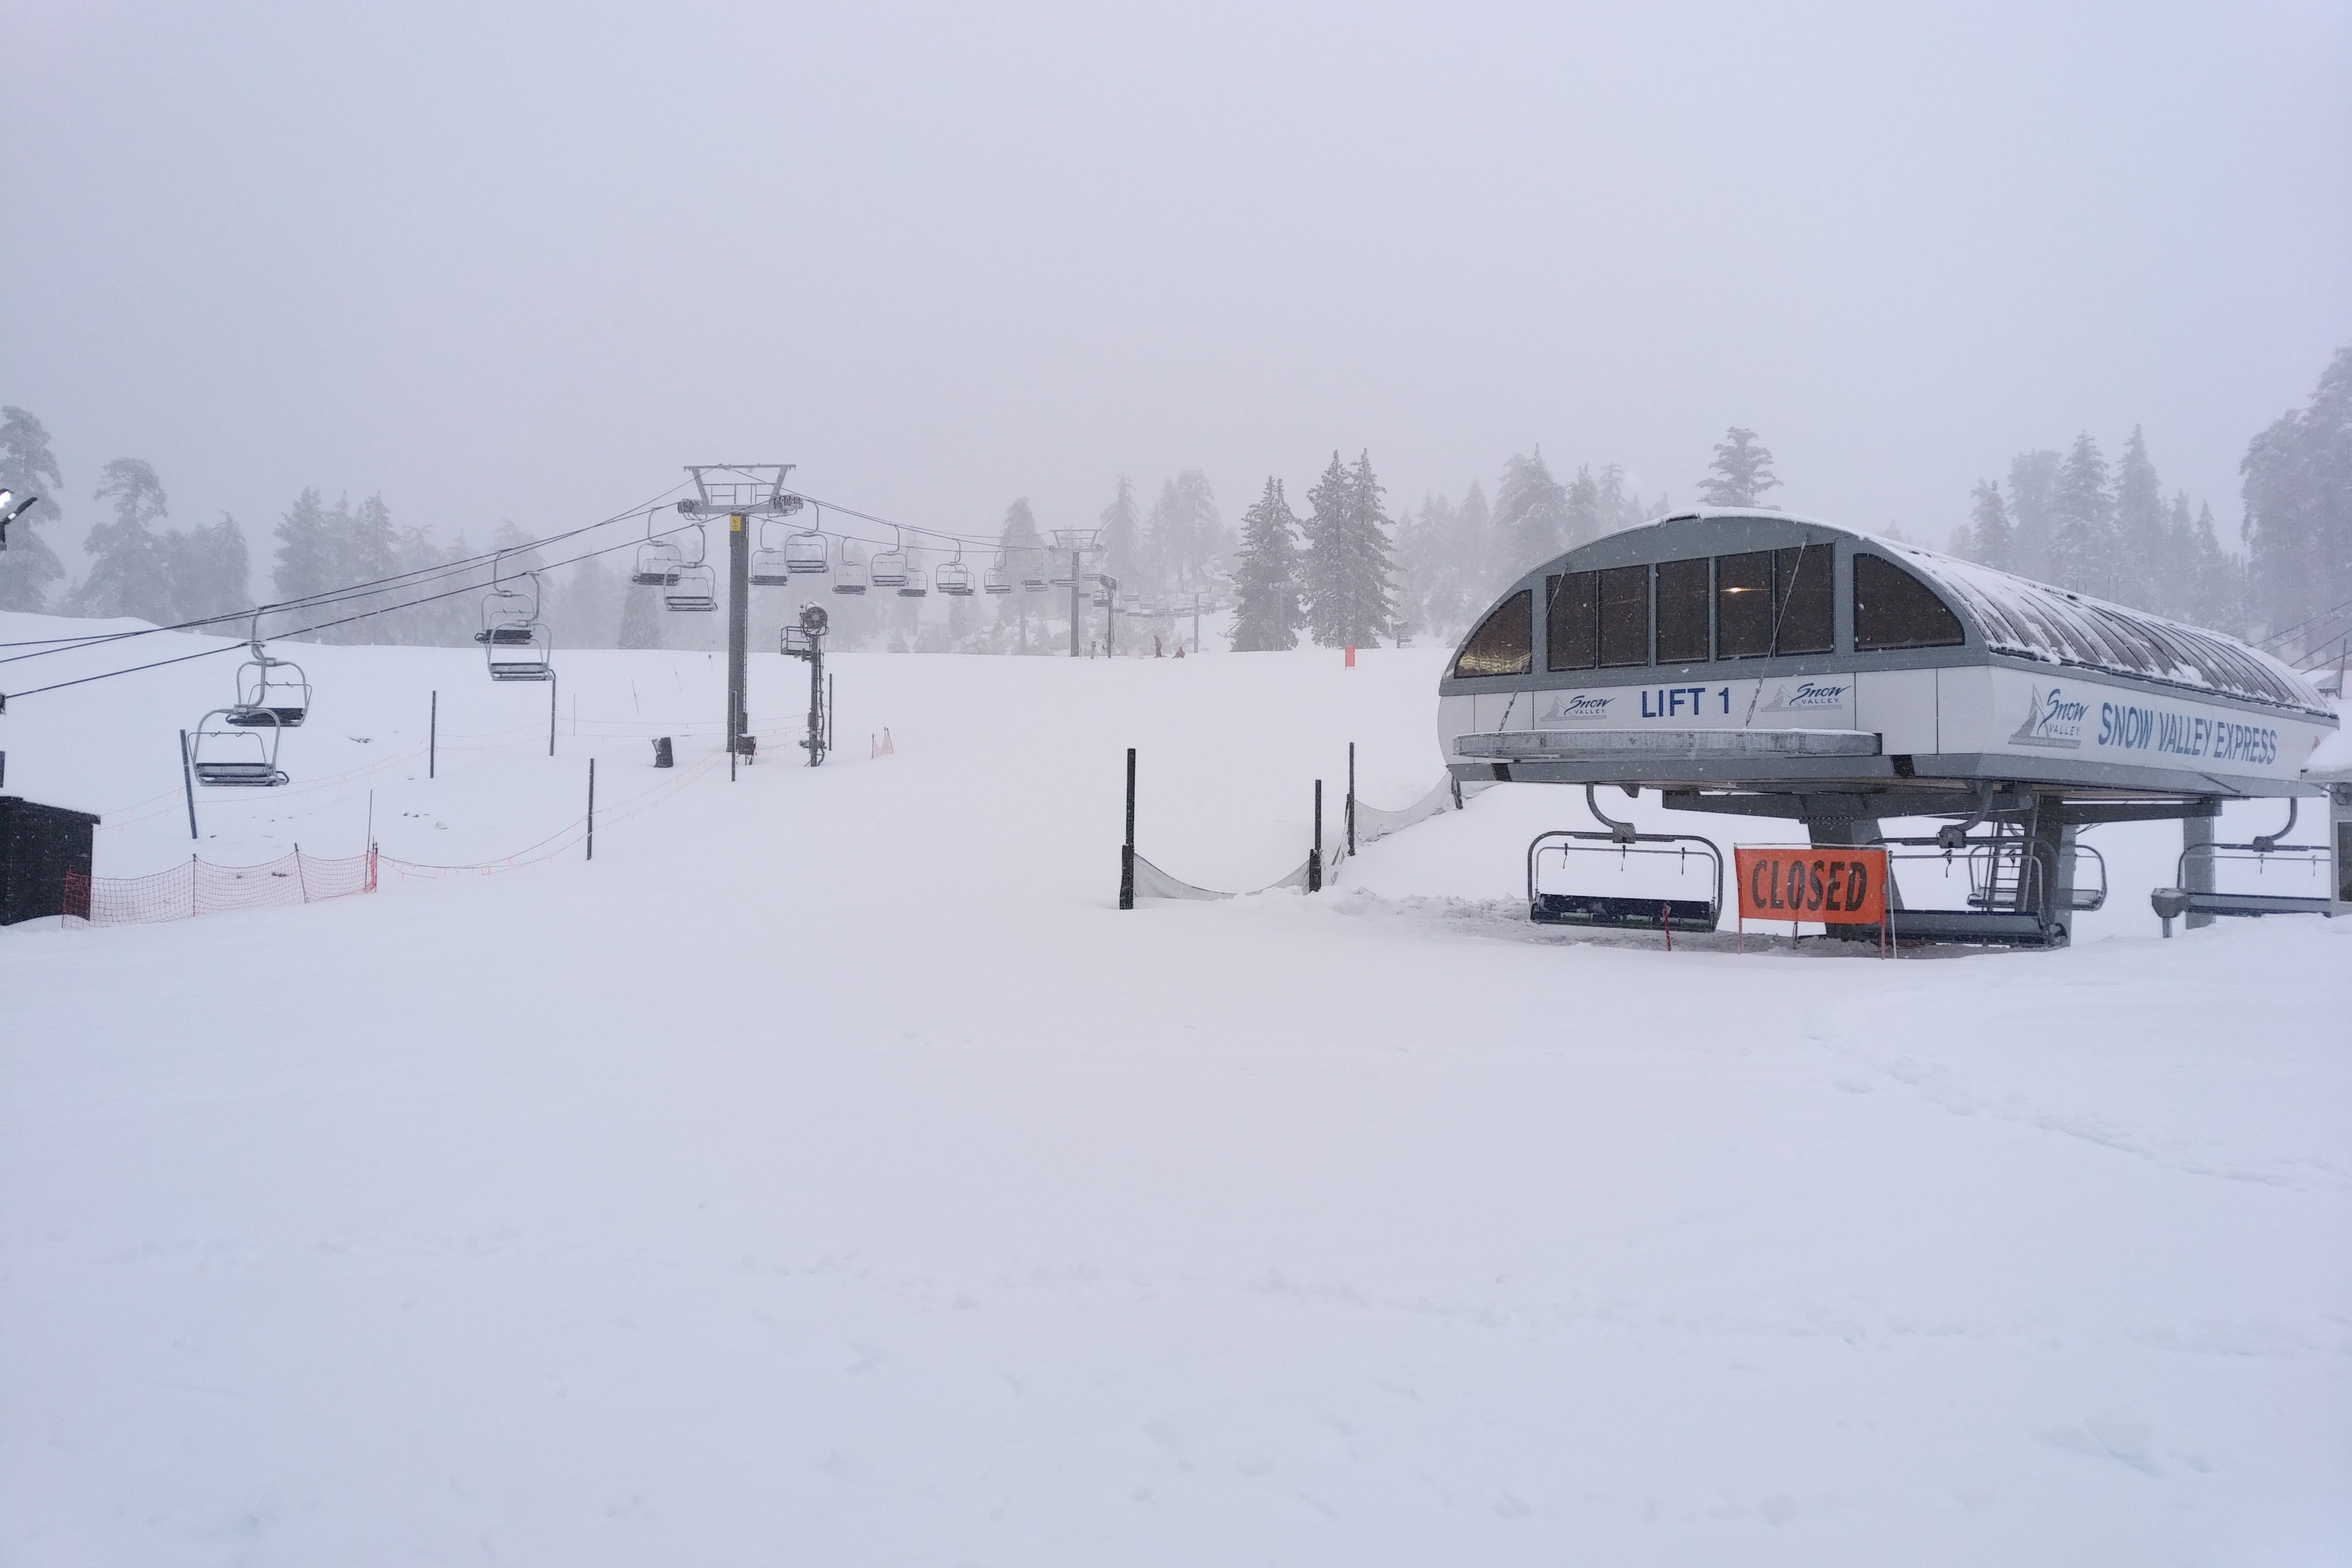 Snow Valley Lift 1 sitting in inclement weather